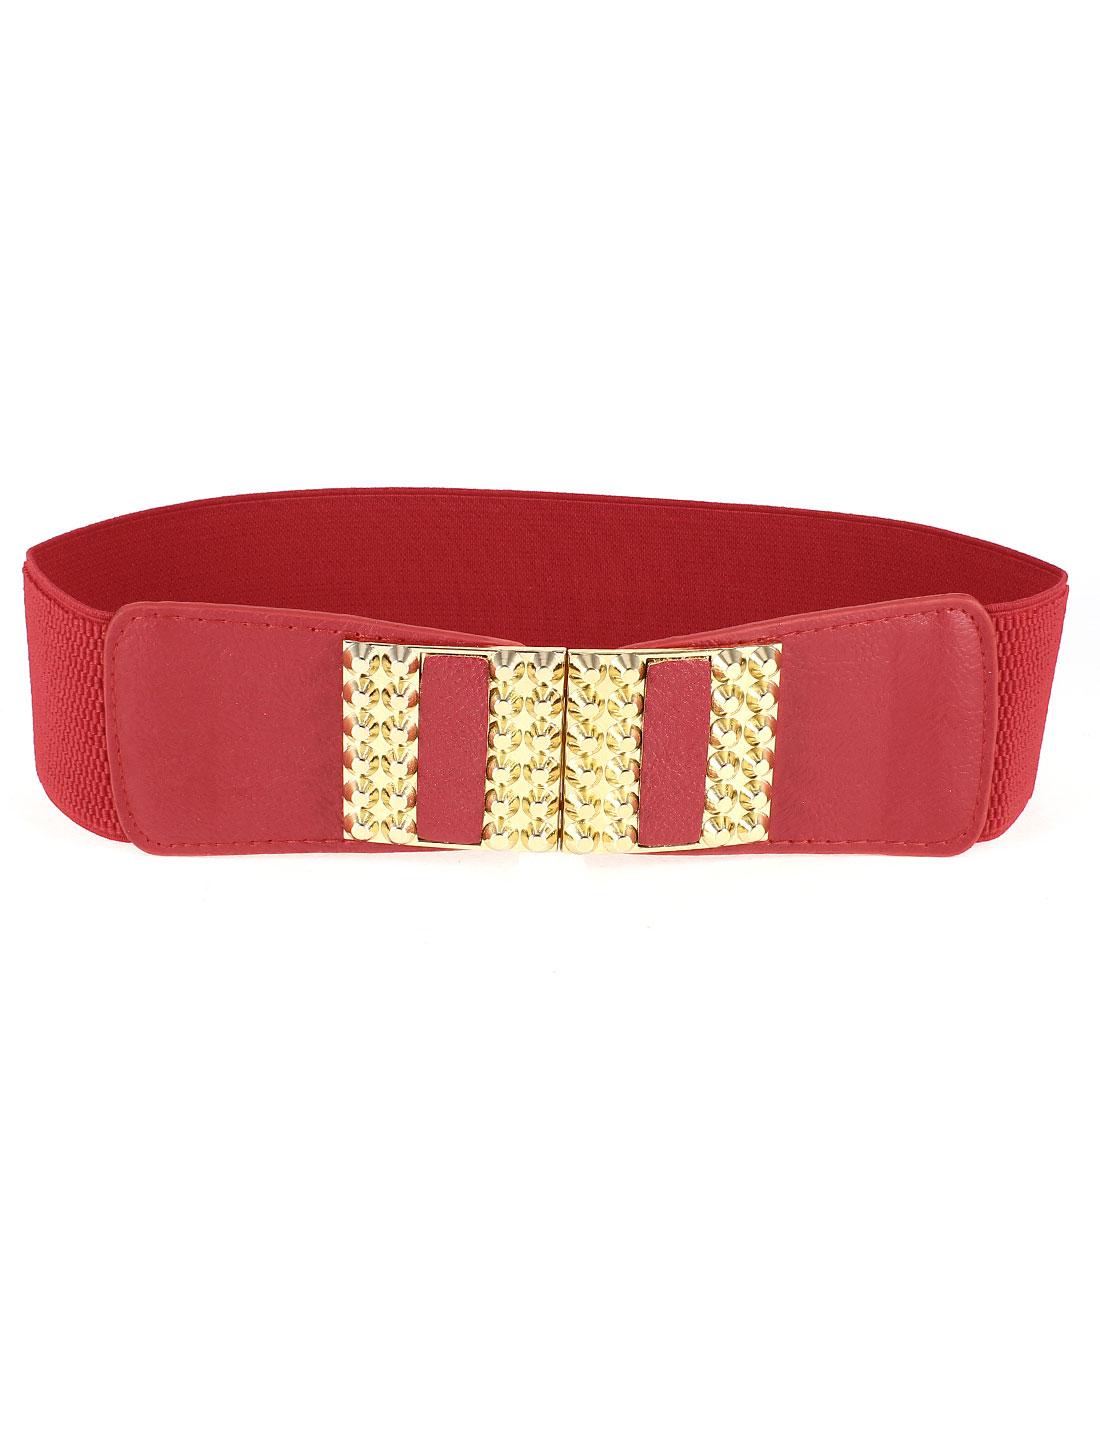 Lady Clinch Bolt Decor Buckle Elastic Waist Belt 6cm Wide Red